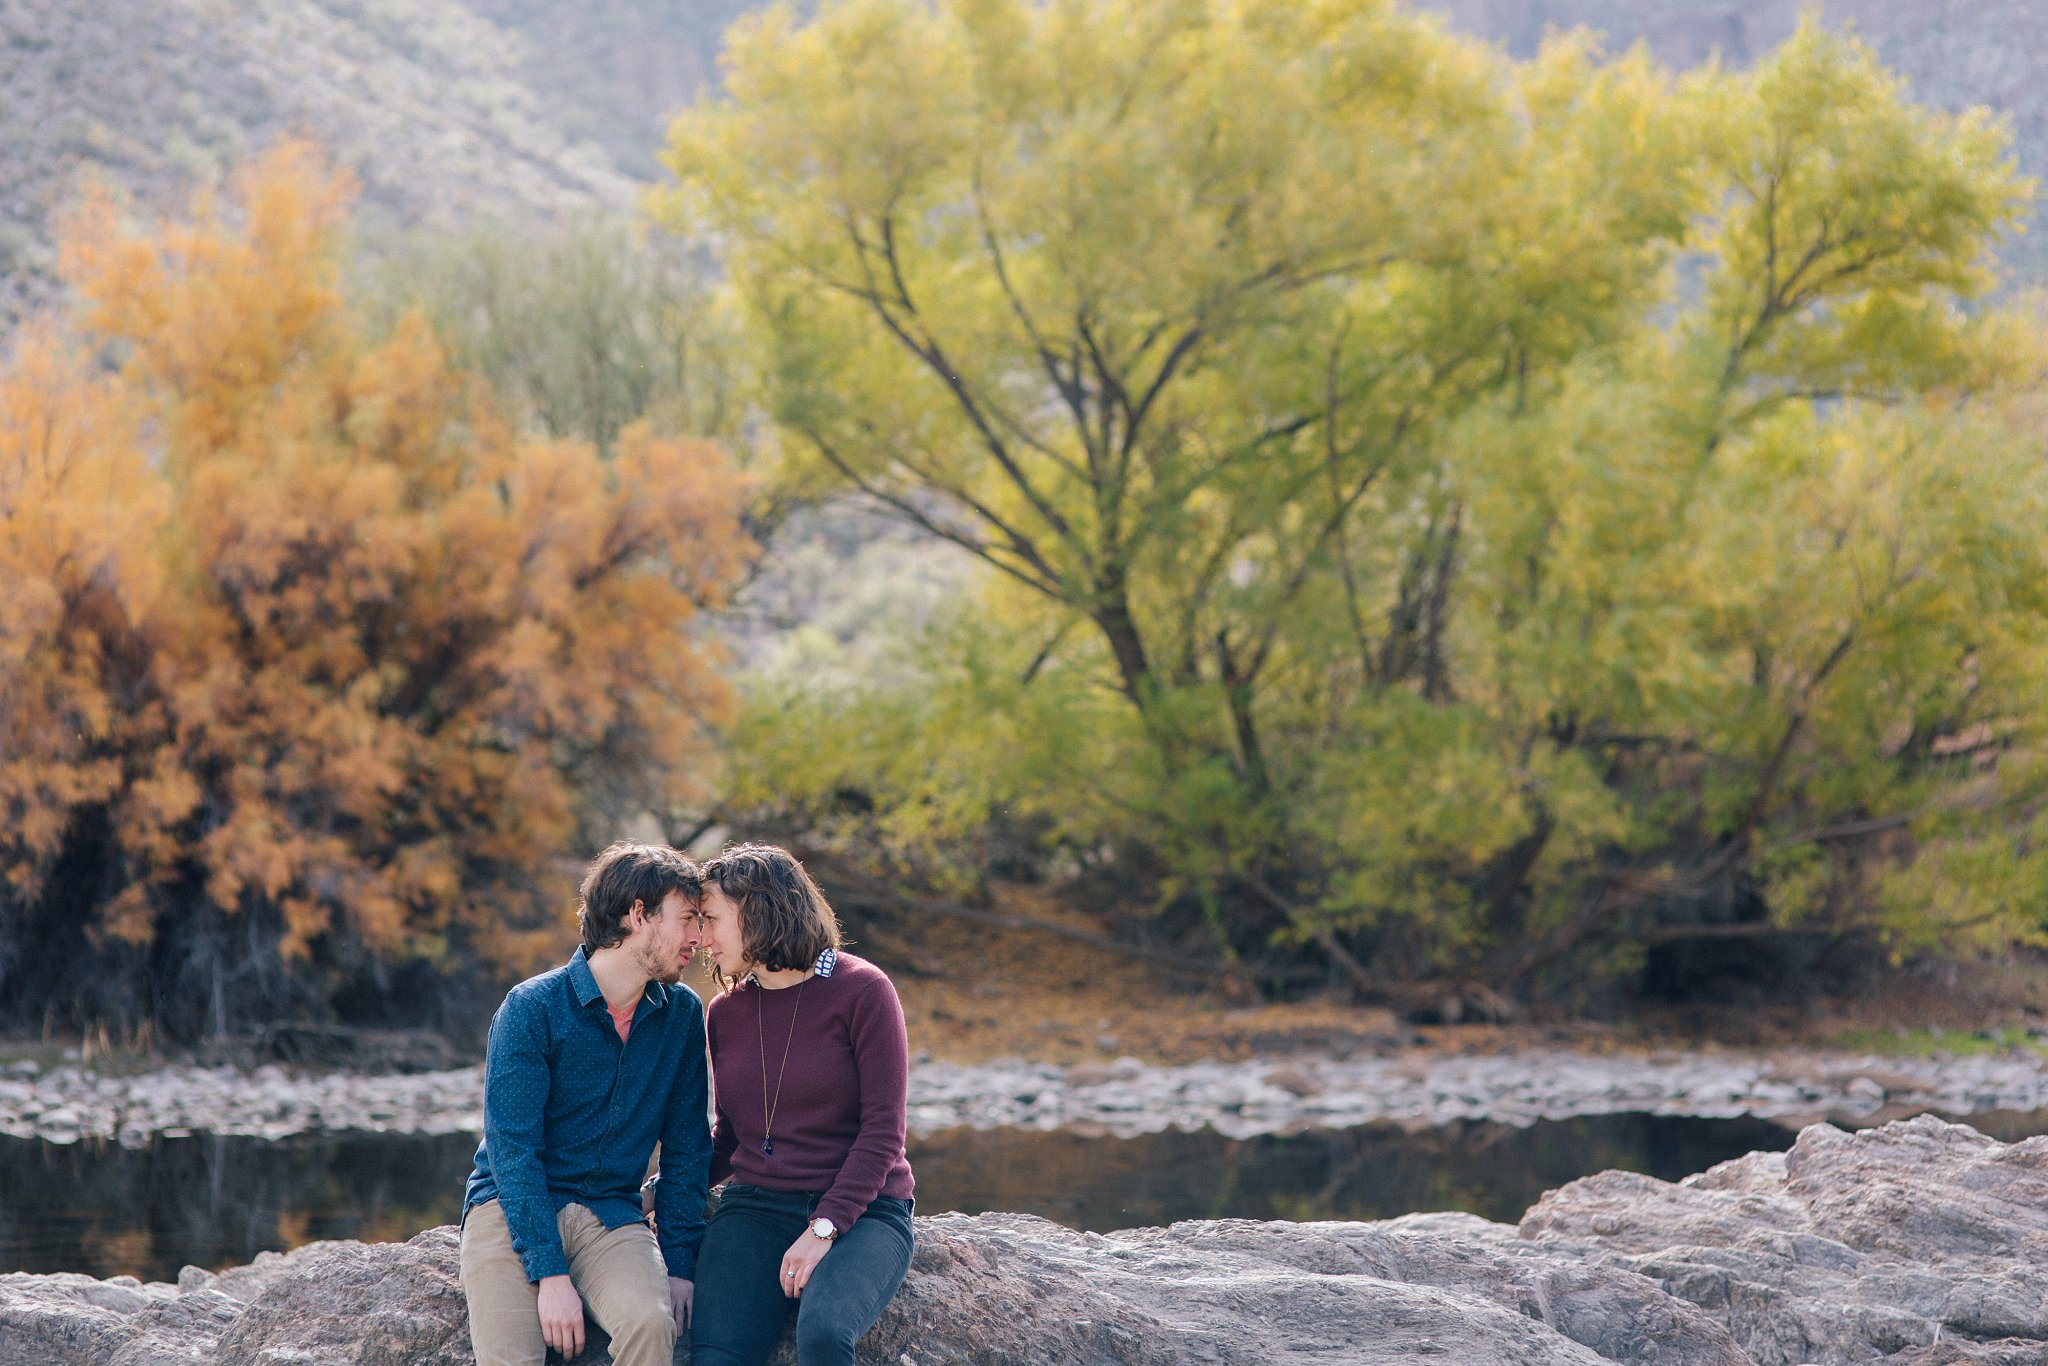 candid documentary engagement session in nature Arizona